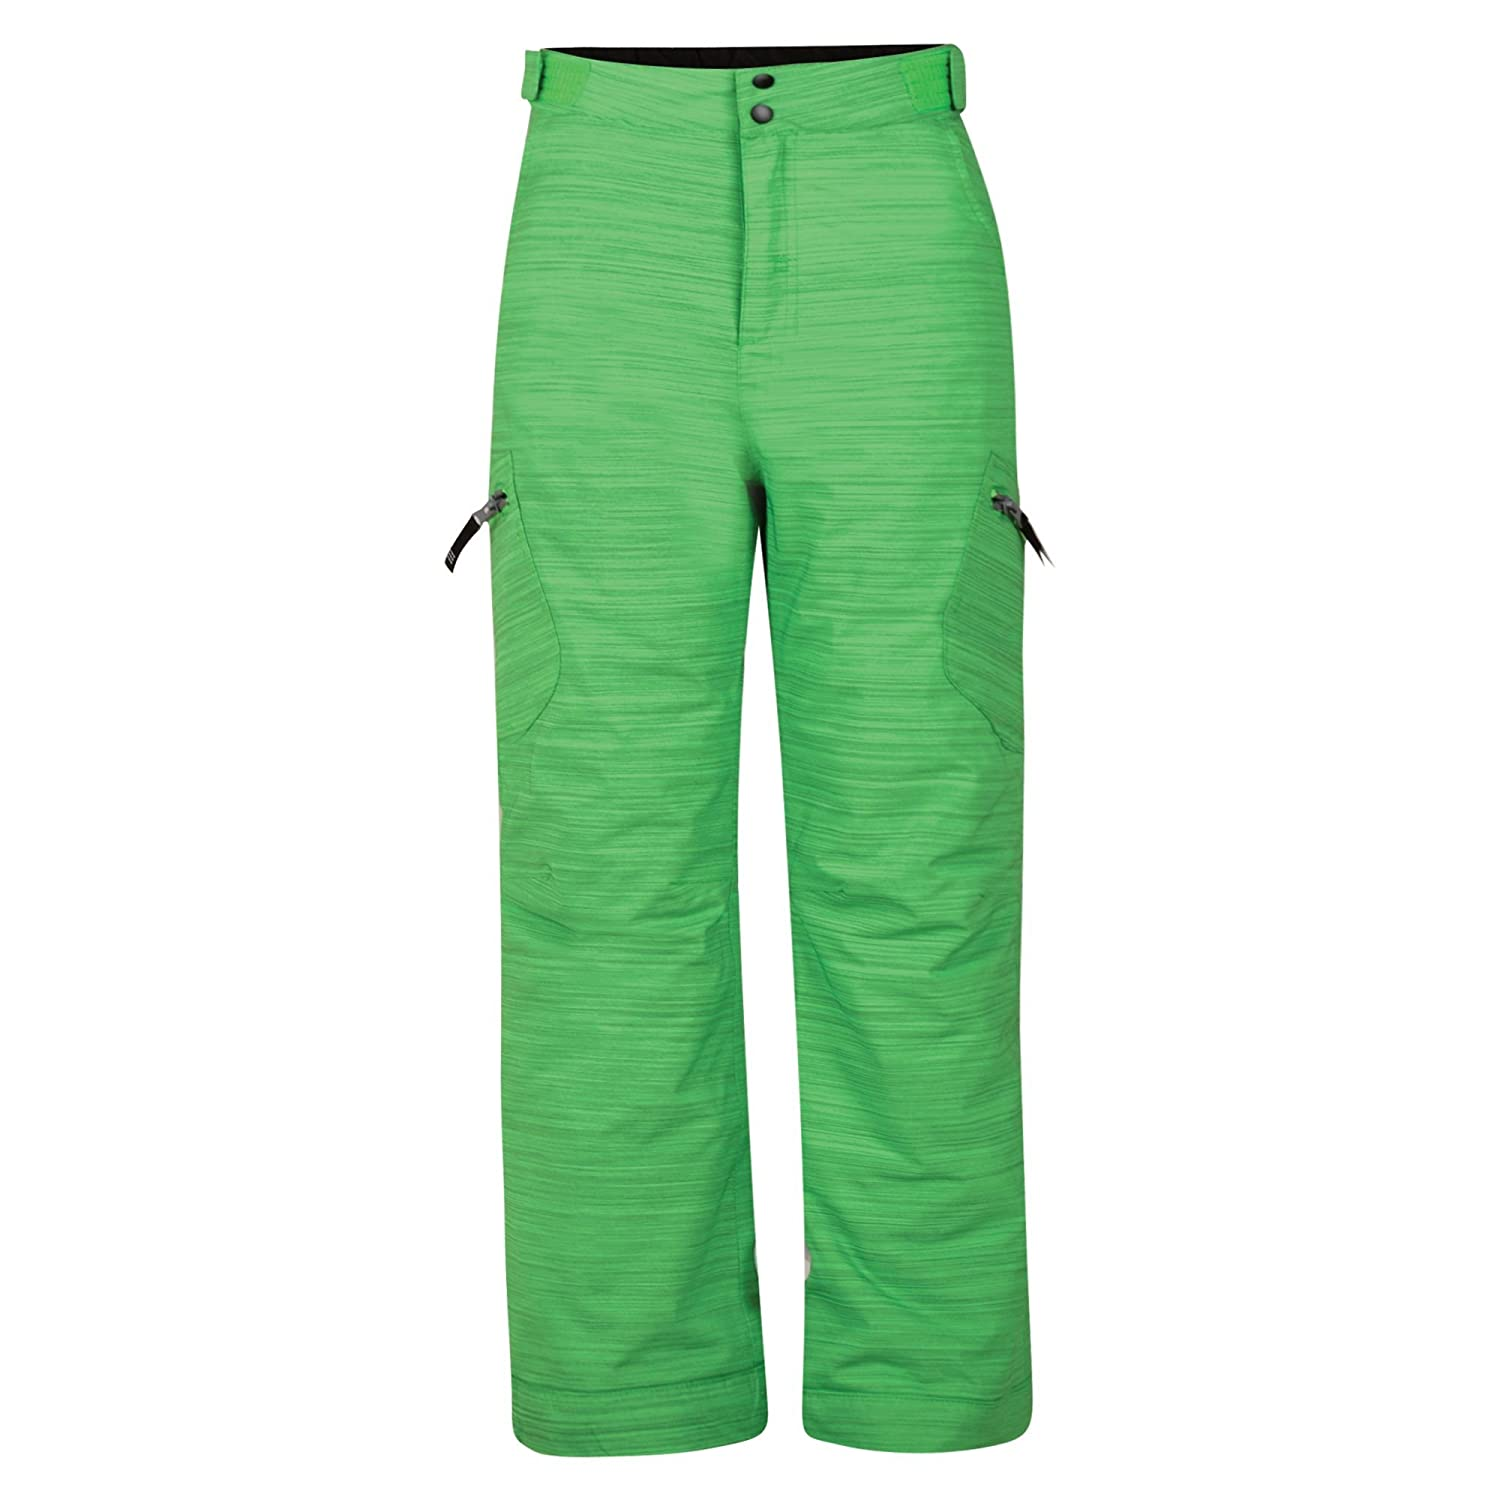 Dare 2B Childrens/Kids Spur On Waterproof Ski Trousers (9-10 Years) (Acid Green) UTRG2914_4